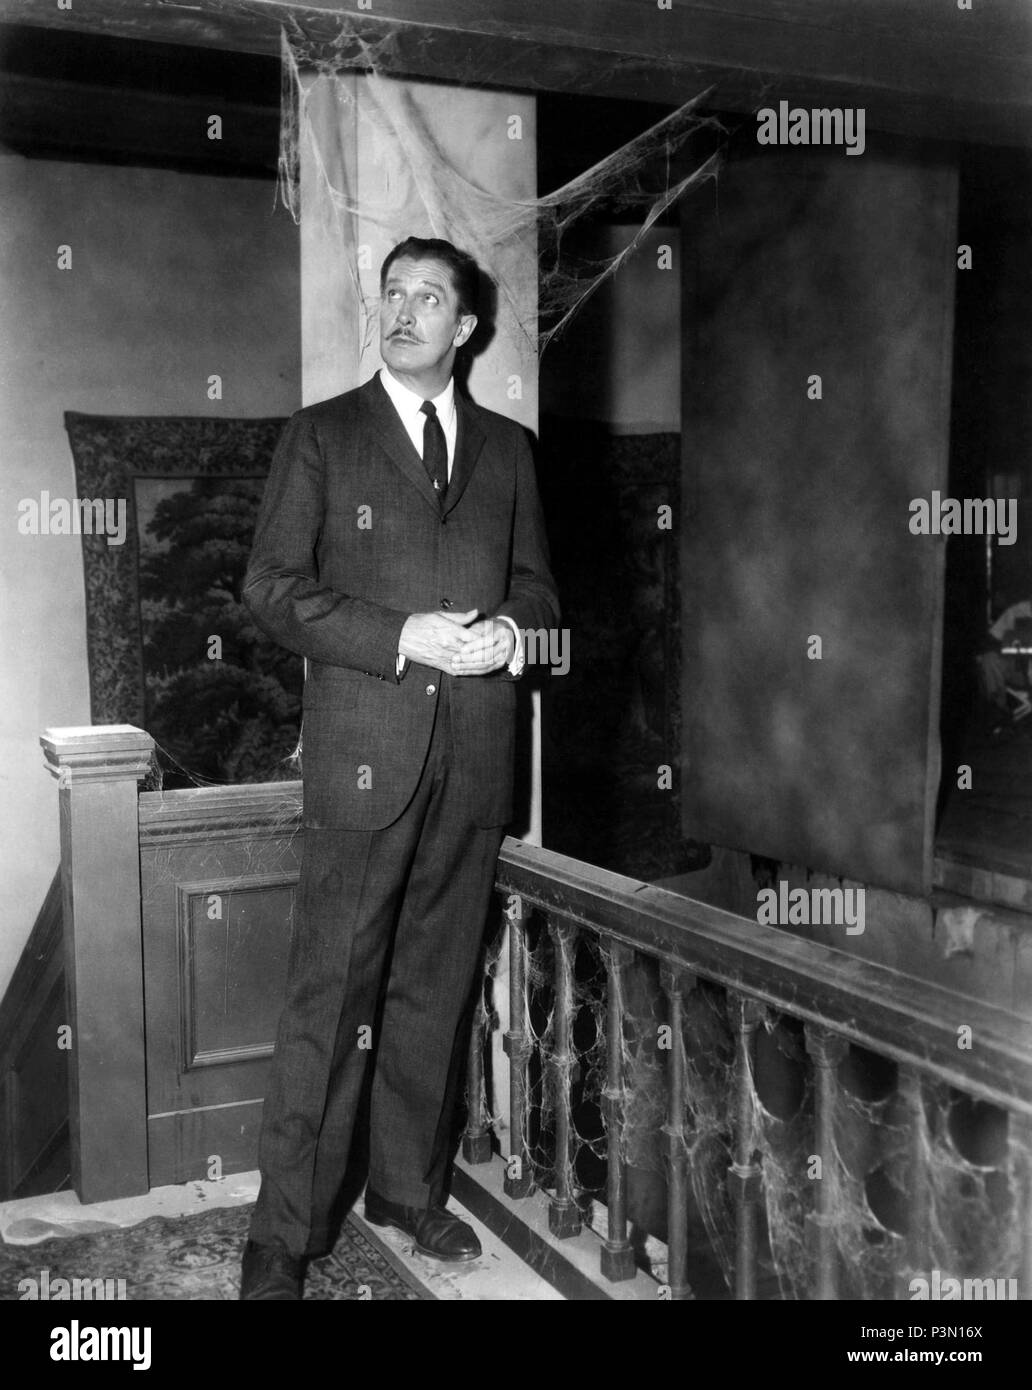 Original Film Title House On Haunted Hill English Title House On Haunted Hill Film Director William Castle Year 1959 Stars Vincent Price Credit Allied Artists Album Stock Photo Alamy